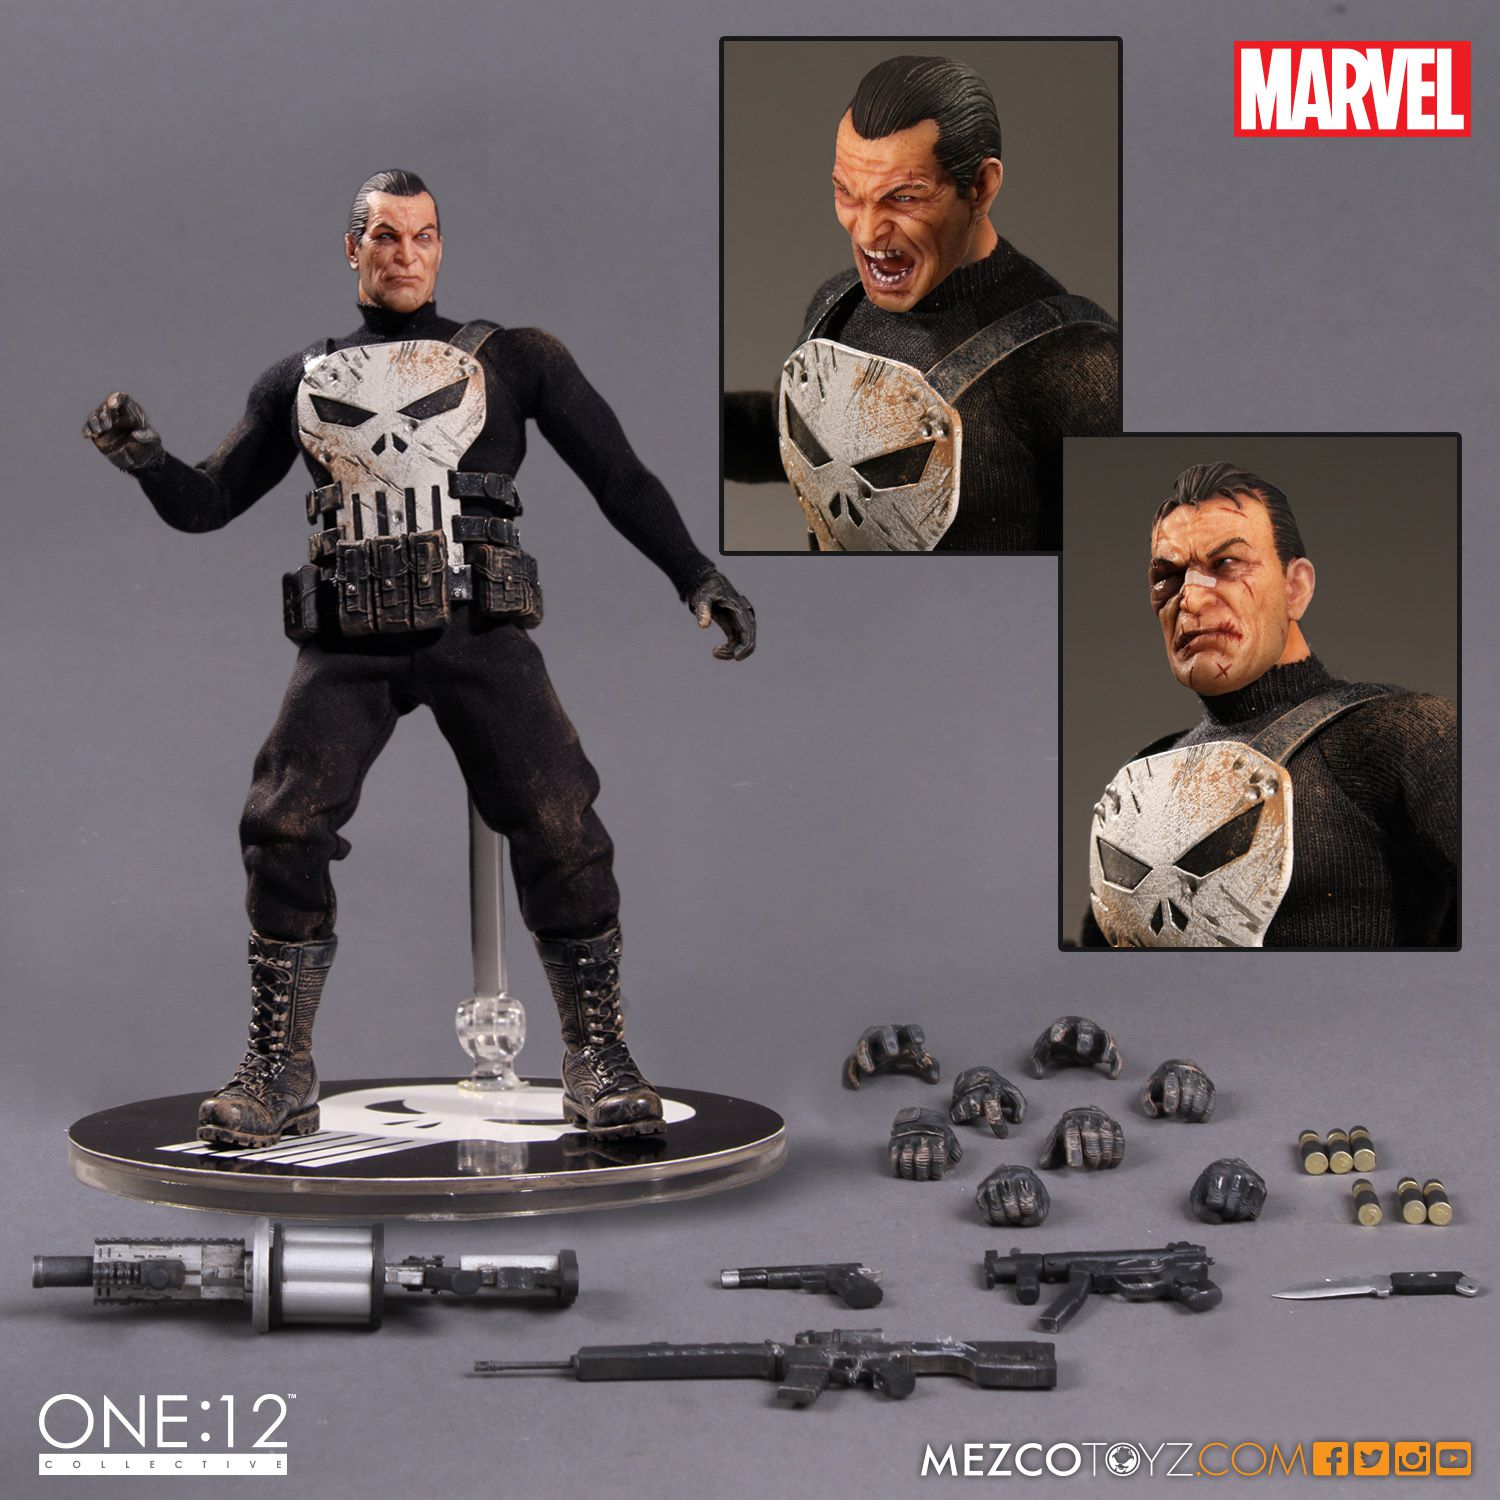 6 Inch Marvel Mezco: 12 The Punisher PVC Collectible Model Toy Action Figure15cm